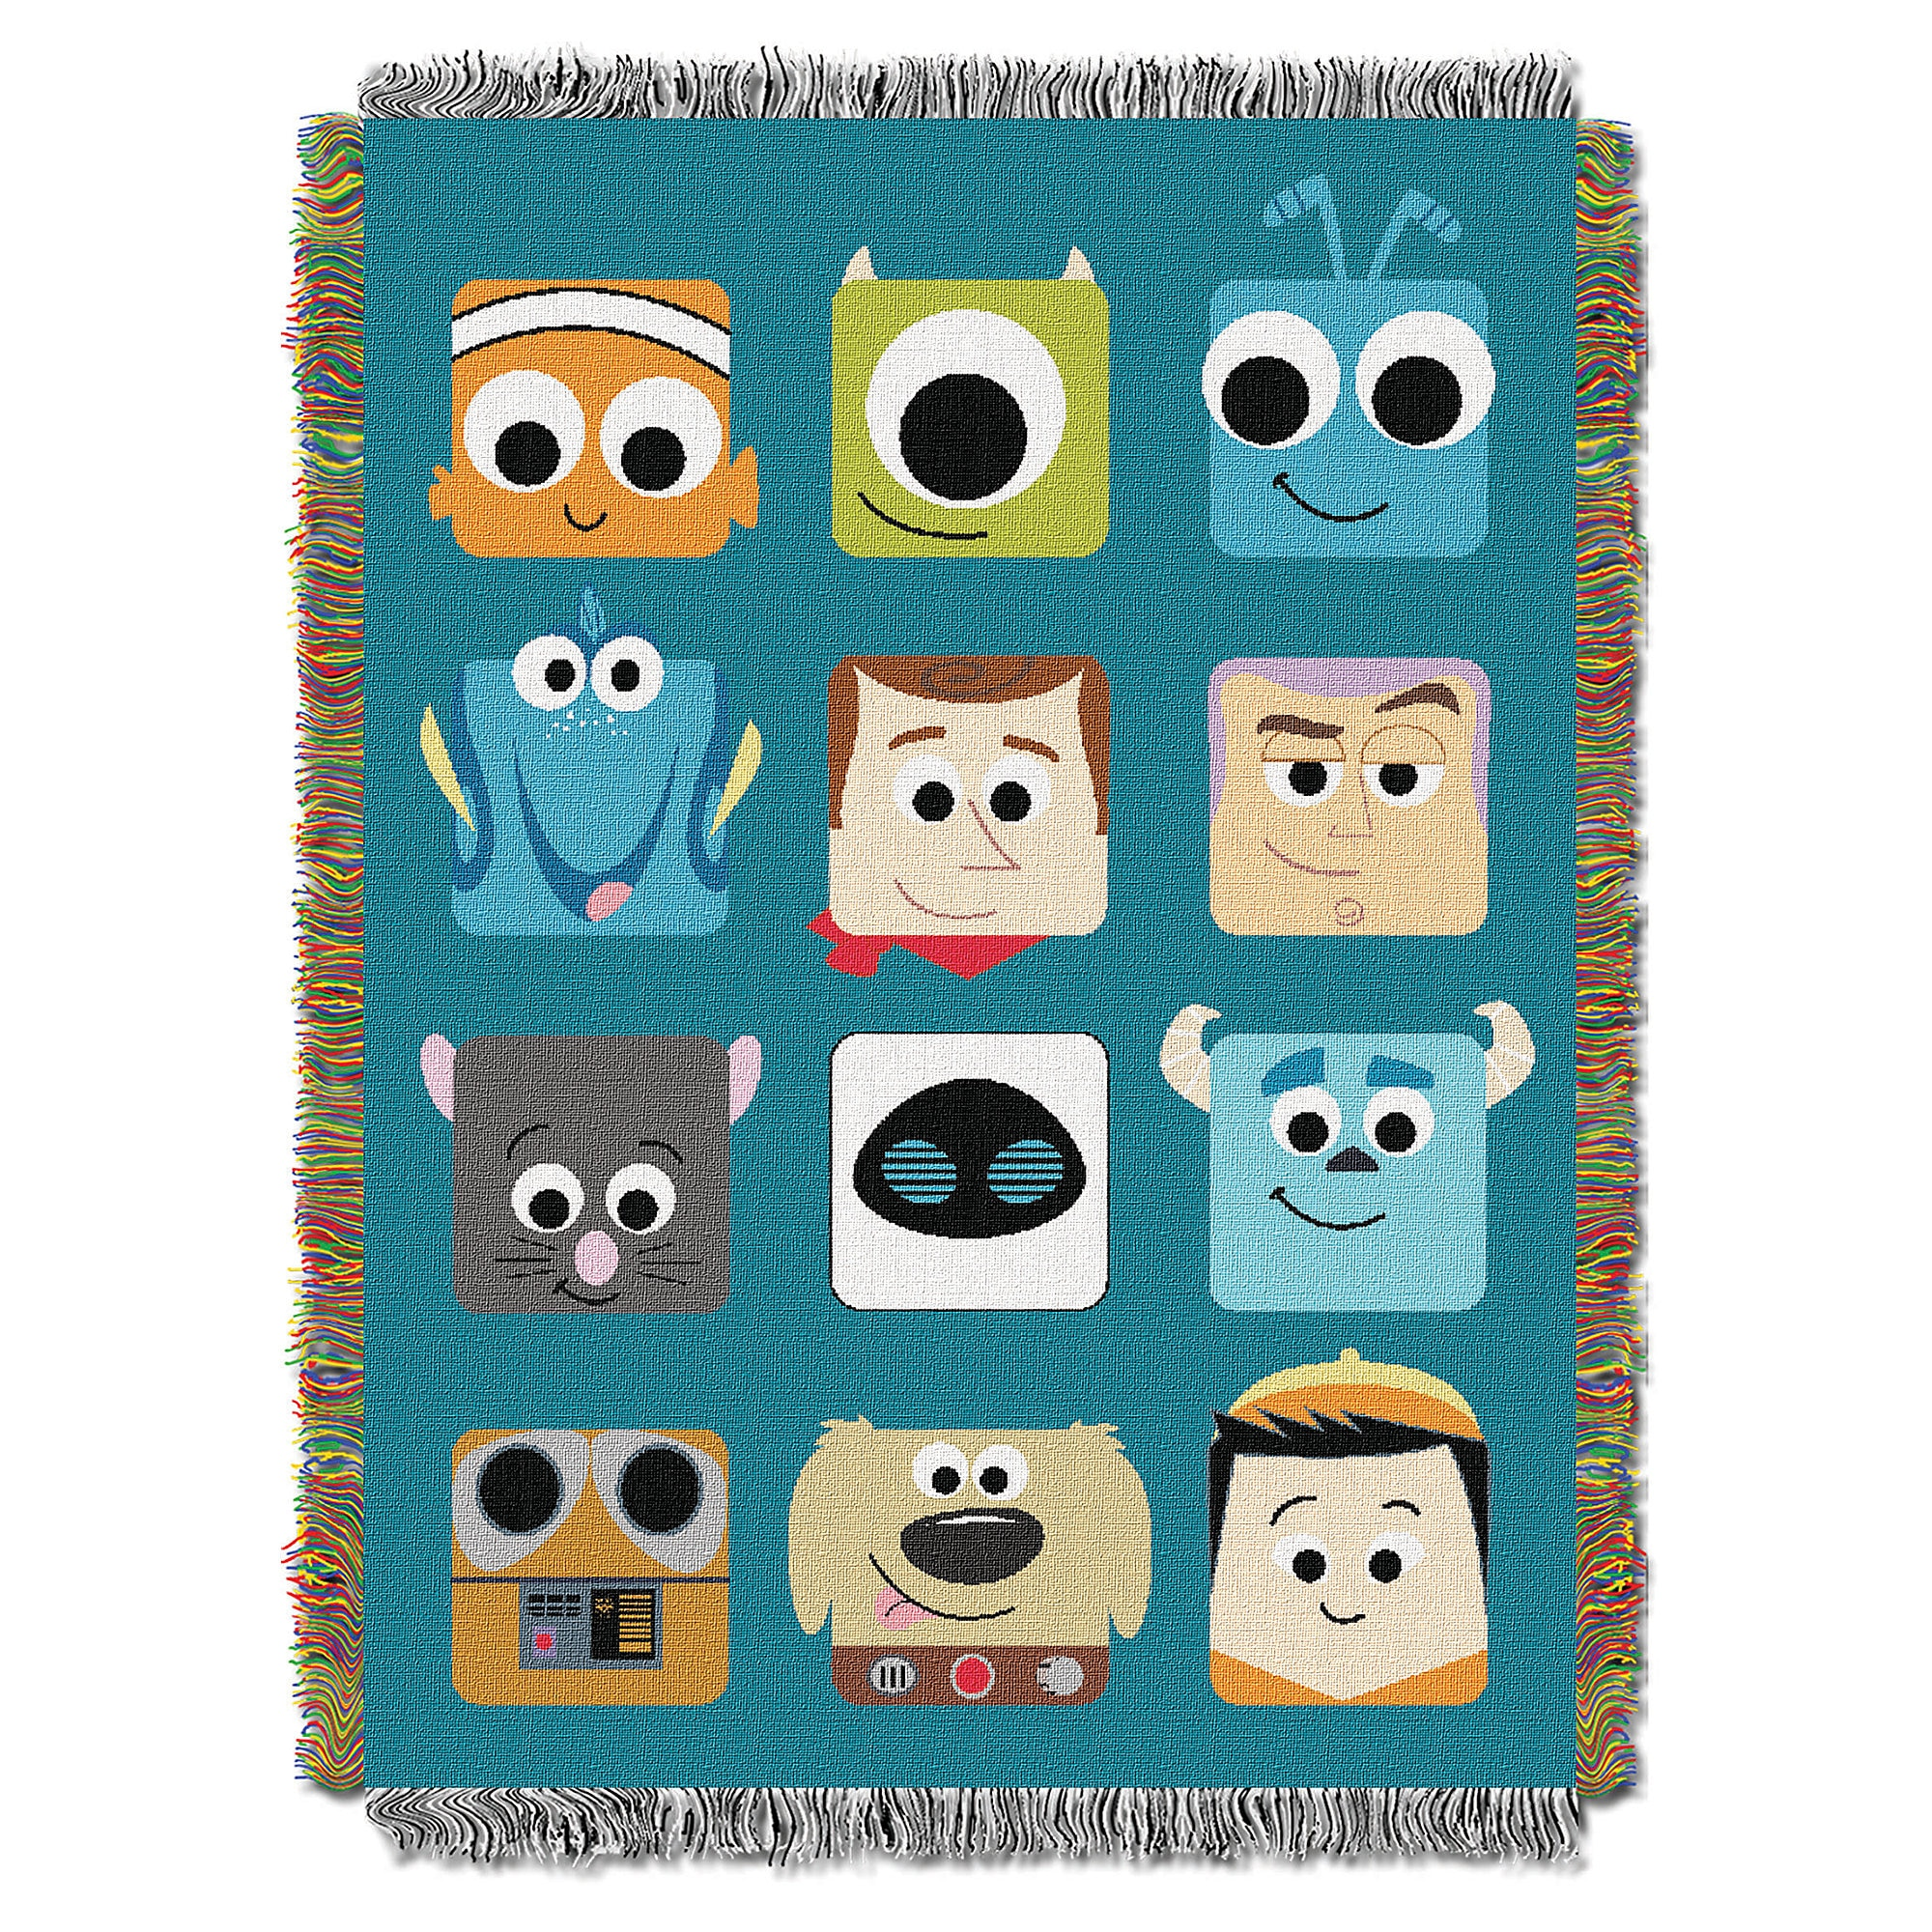 Pixarland Woven Tapestry Throw